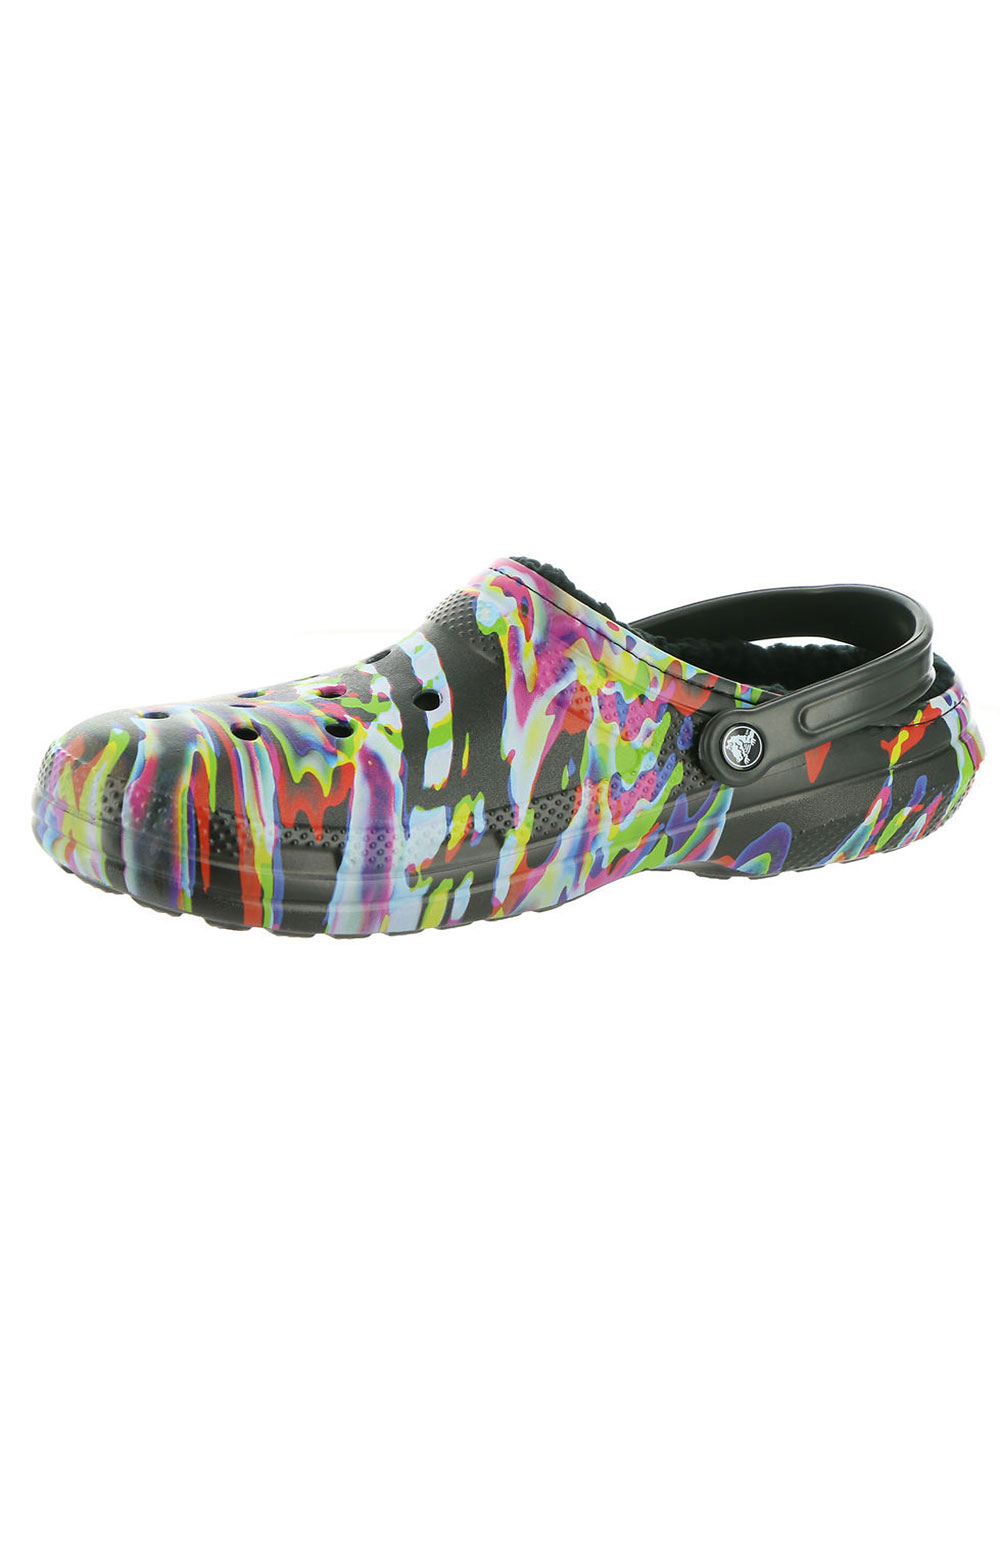 Classic Lined Out Of This World Clogs - Black/Multi 4